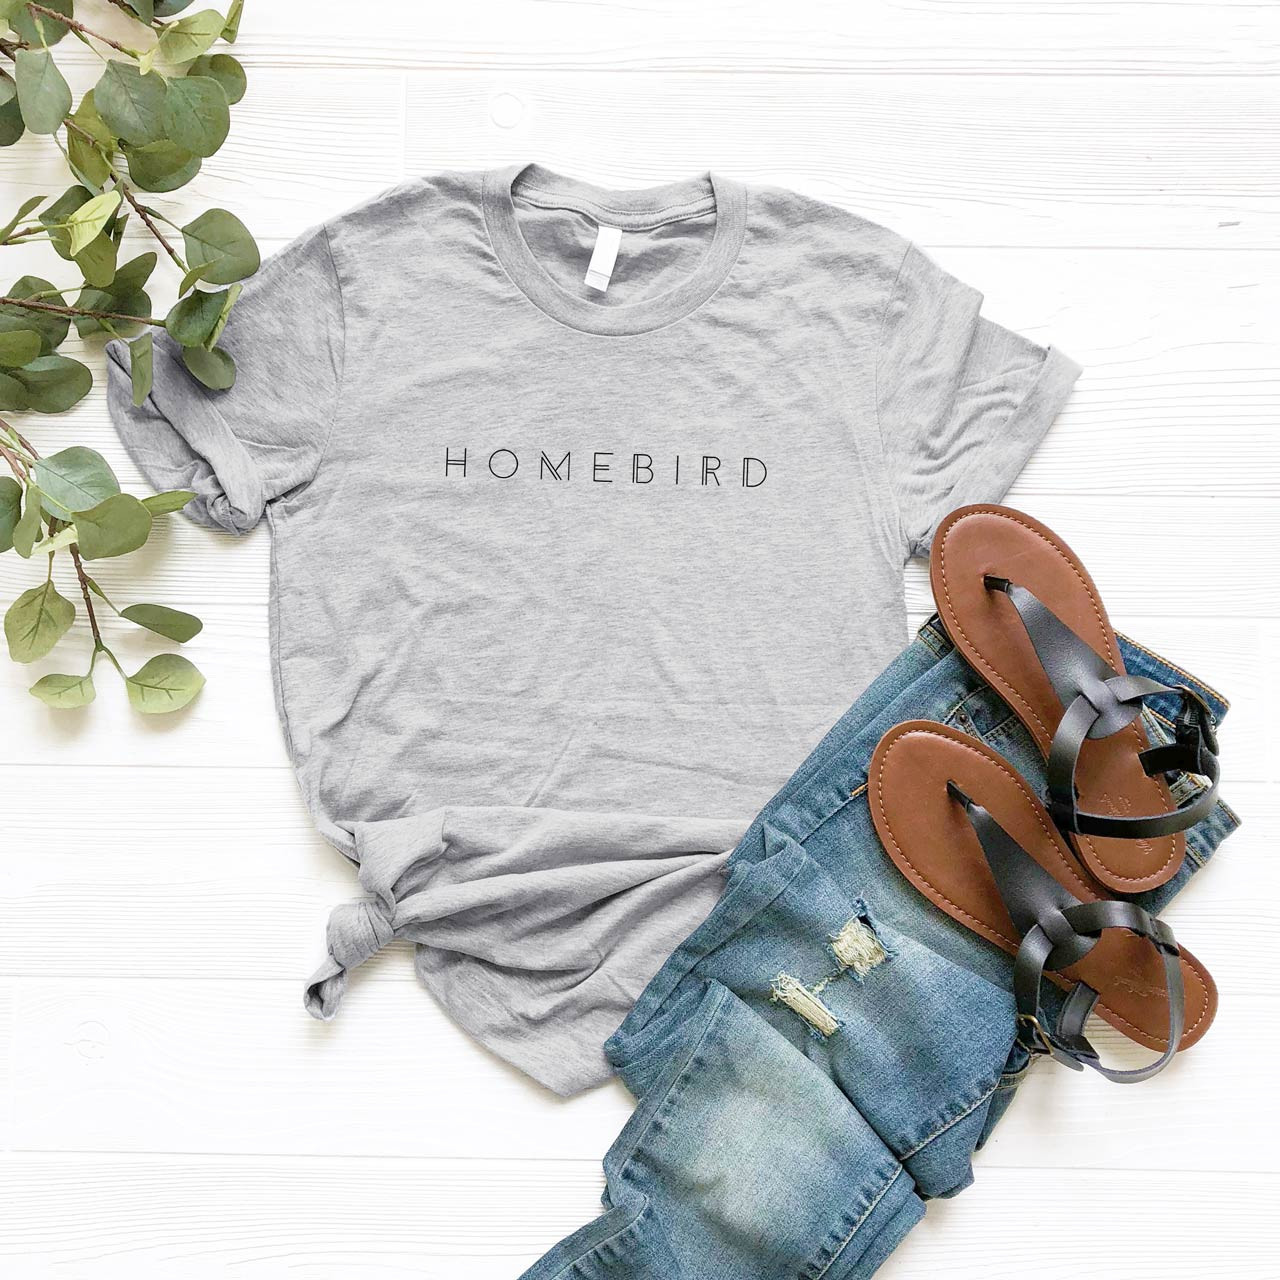 HOMEBIRD Cotton T-Shirt (Black on Gray) from The Printed Home